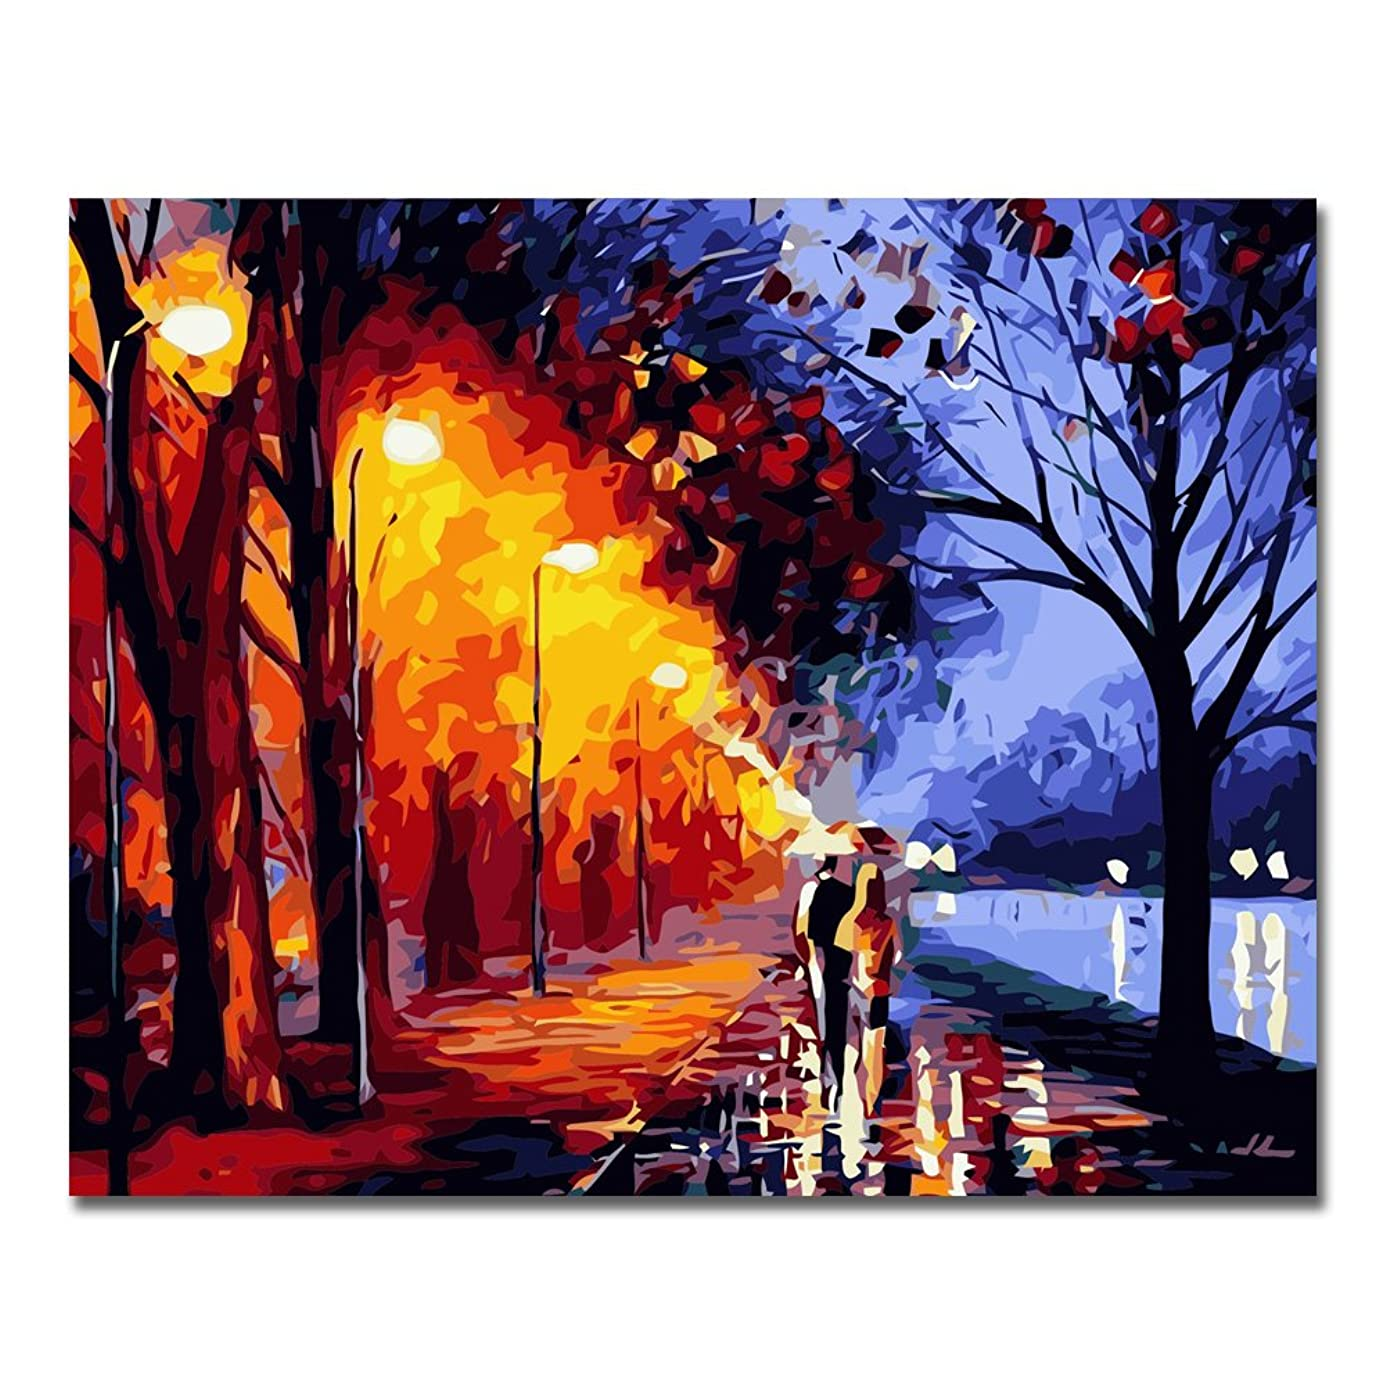 LIUDAO Paint by Number Kits 16 x 20 inch Canvas DIY Oil Painting for Kids Students Adults Beginner with Brushes and Acrylic Pigment - Romantic Street Light (Without Frame)